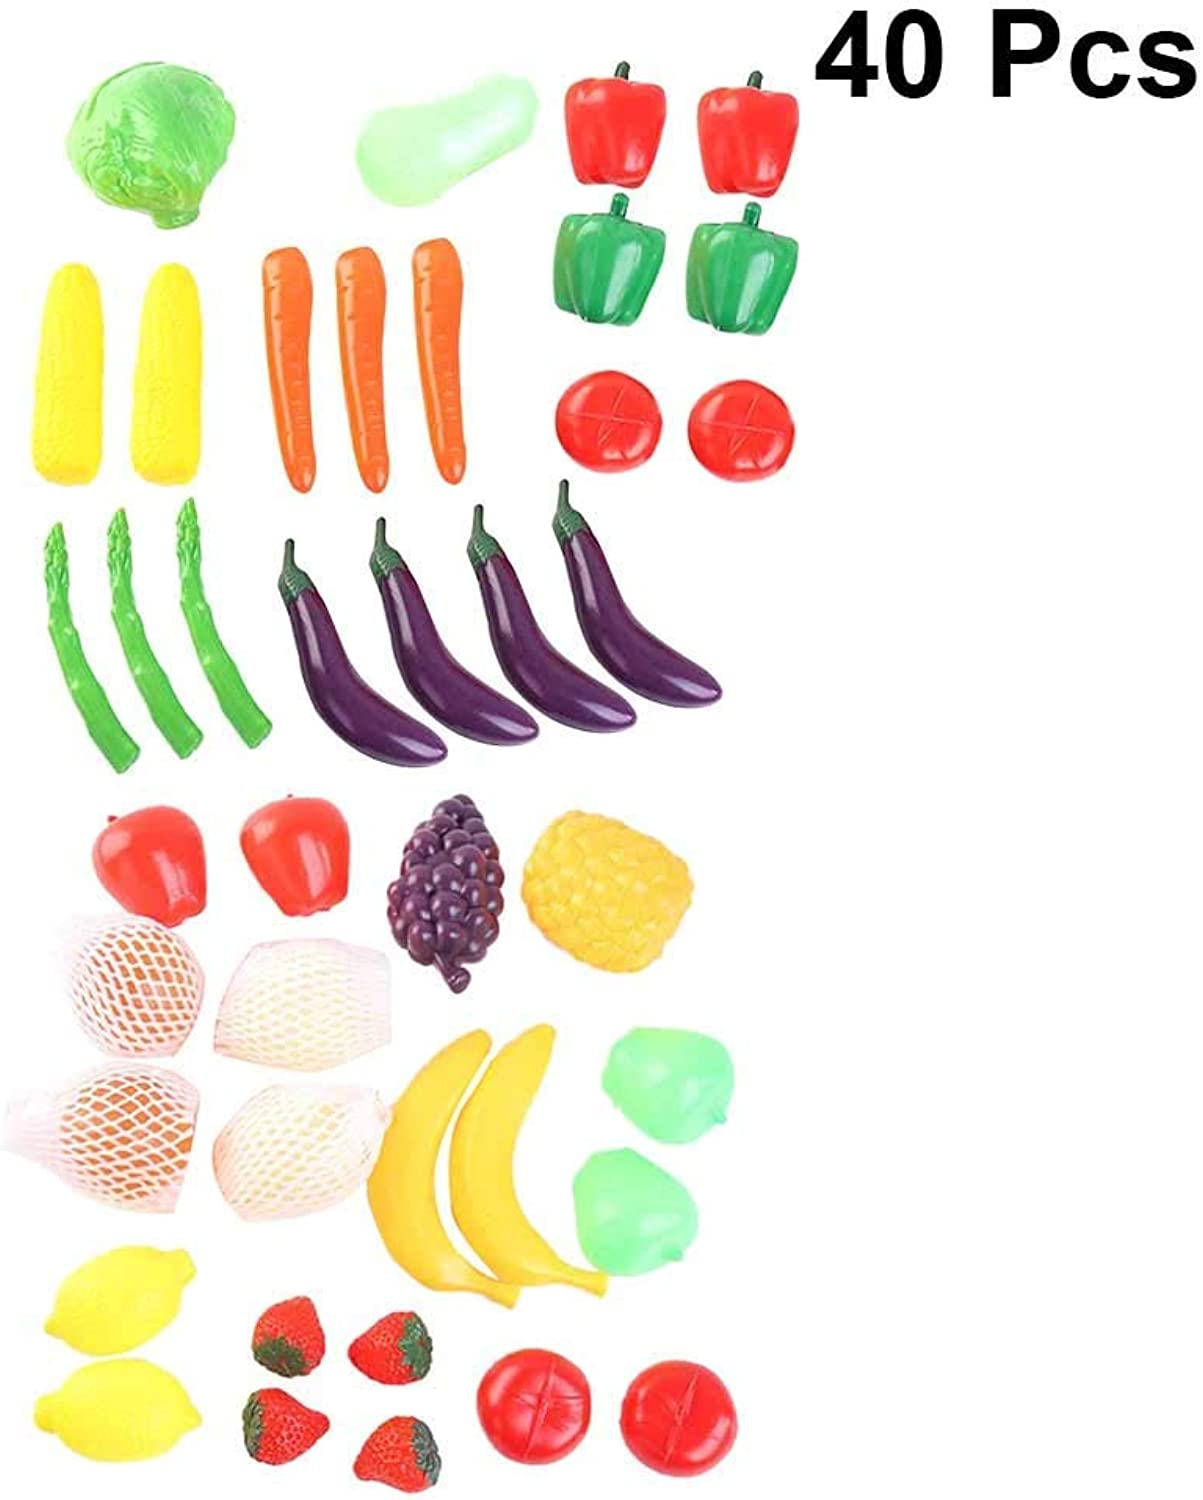 Flyme Baby Pretend Play Toys Cutting Fruits Vegetables Cooking Playset Cute Fun Educational Toys for Kids 40Pcs